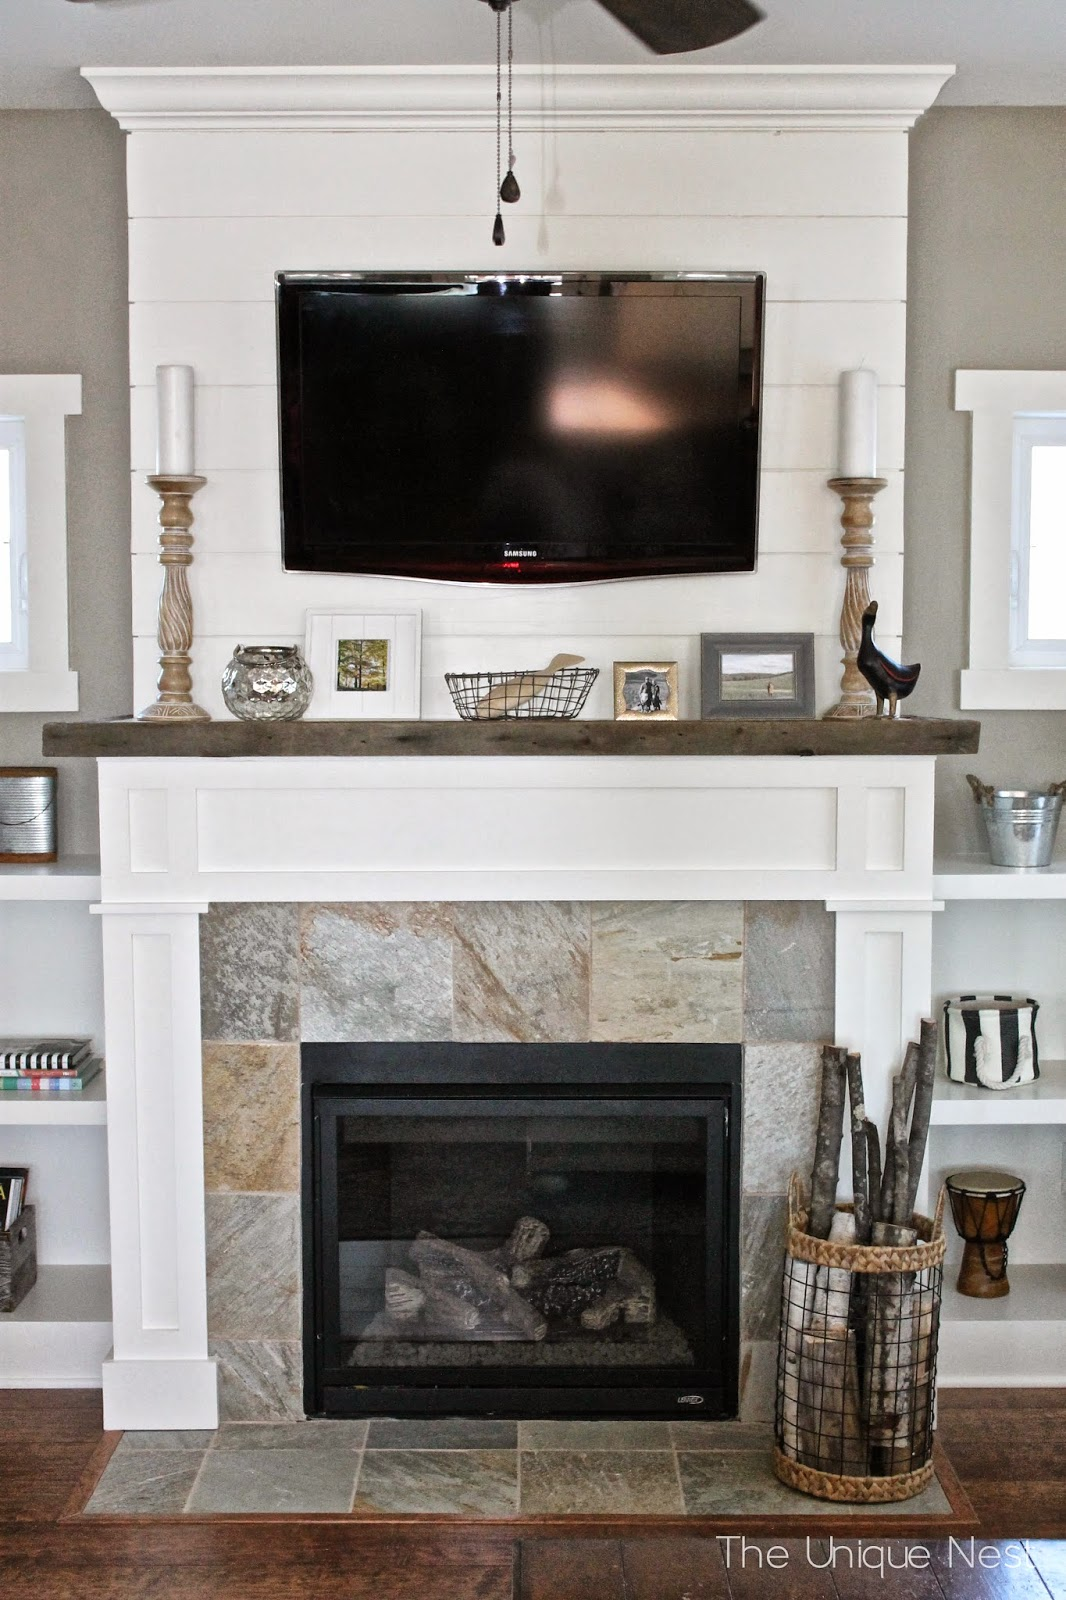 Shiplap Fireplace With Built Ins The Unique Nest